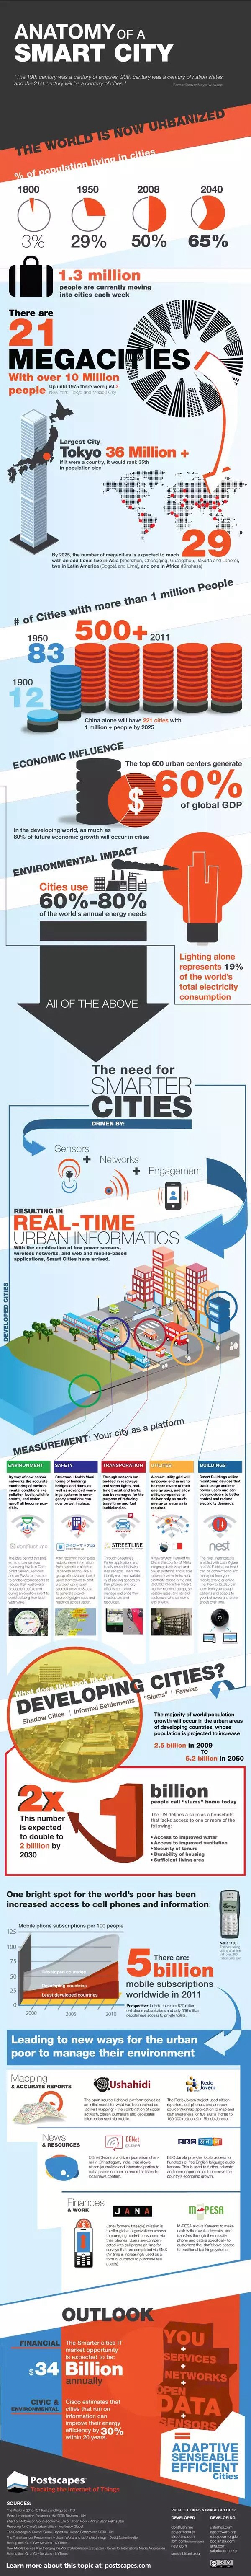 The anatomy of smart city #Infographic